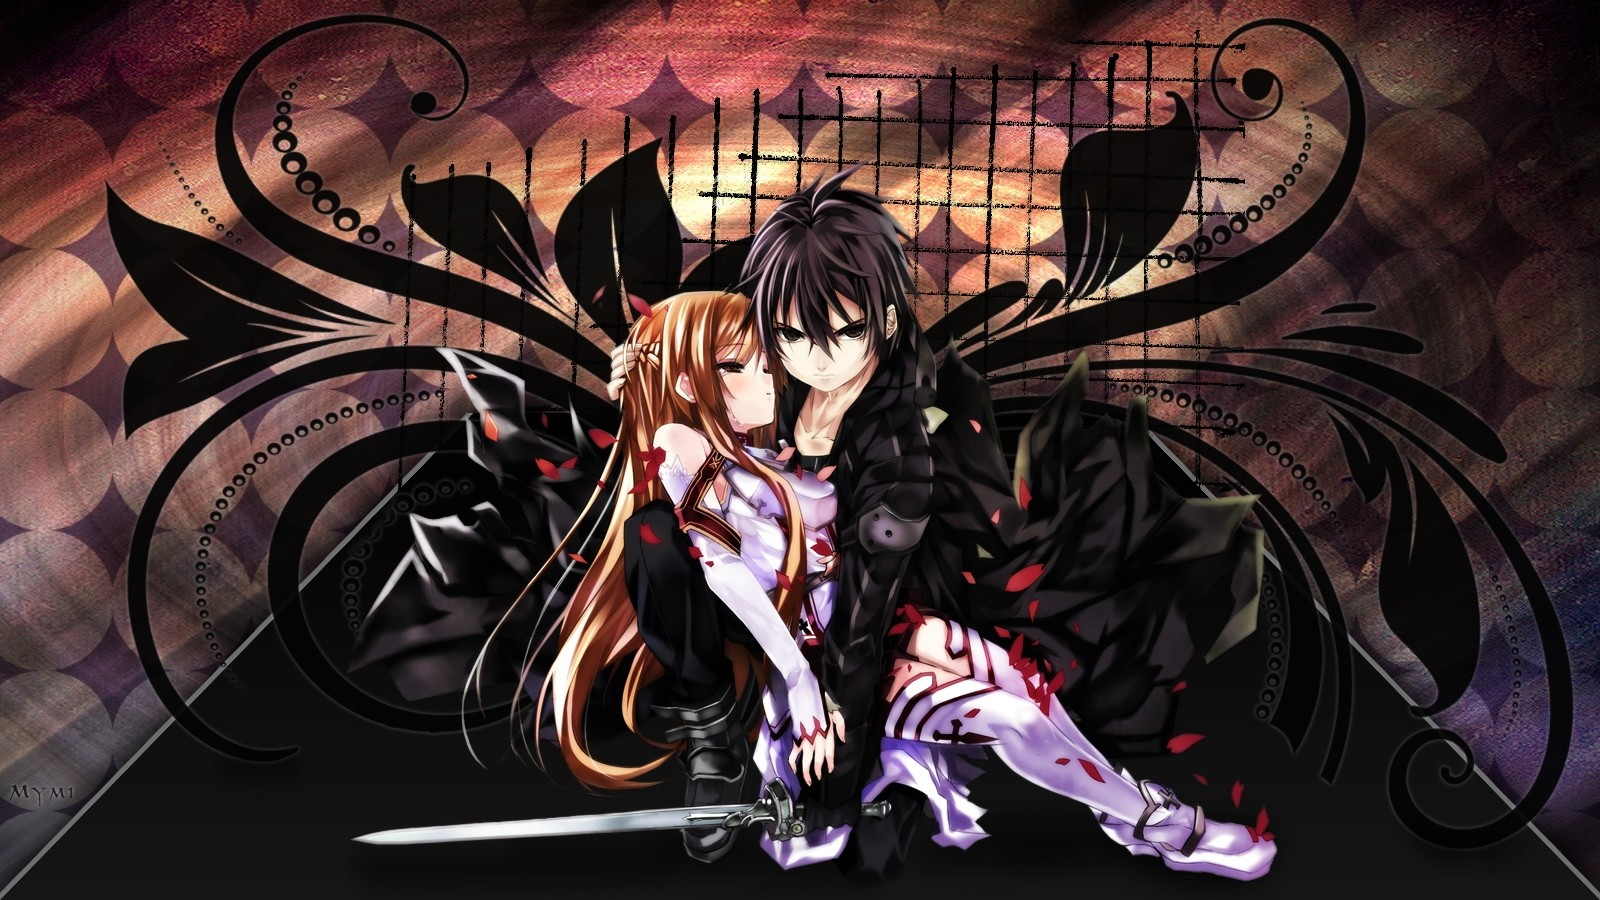 Sword art online images sword art online wallpaper photos for On line art galleries